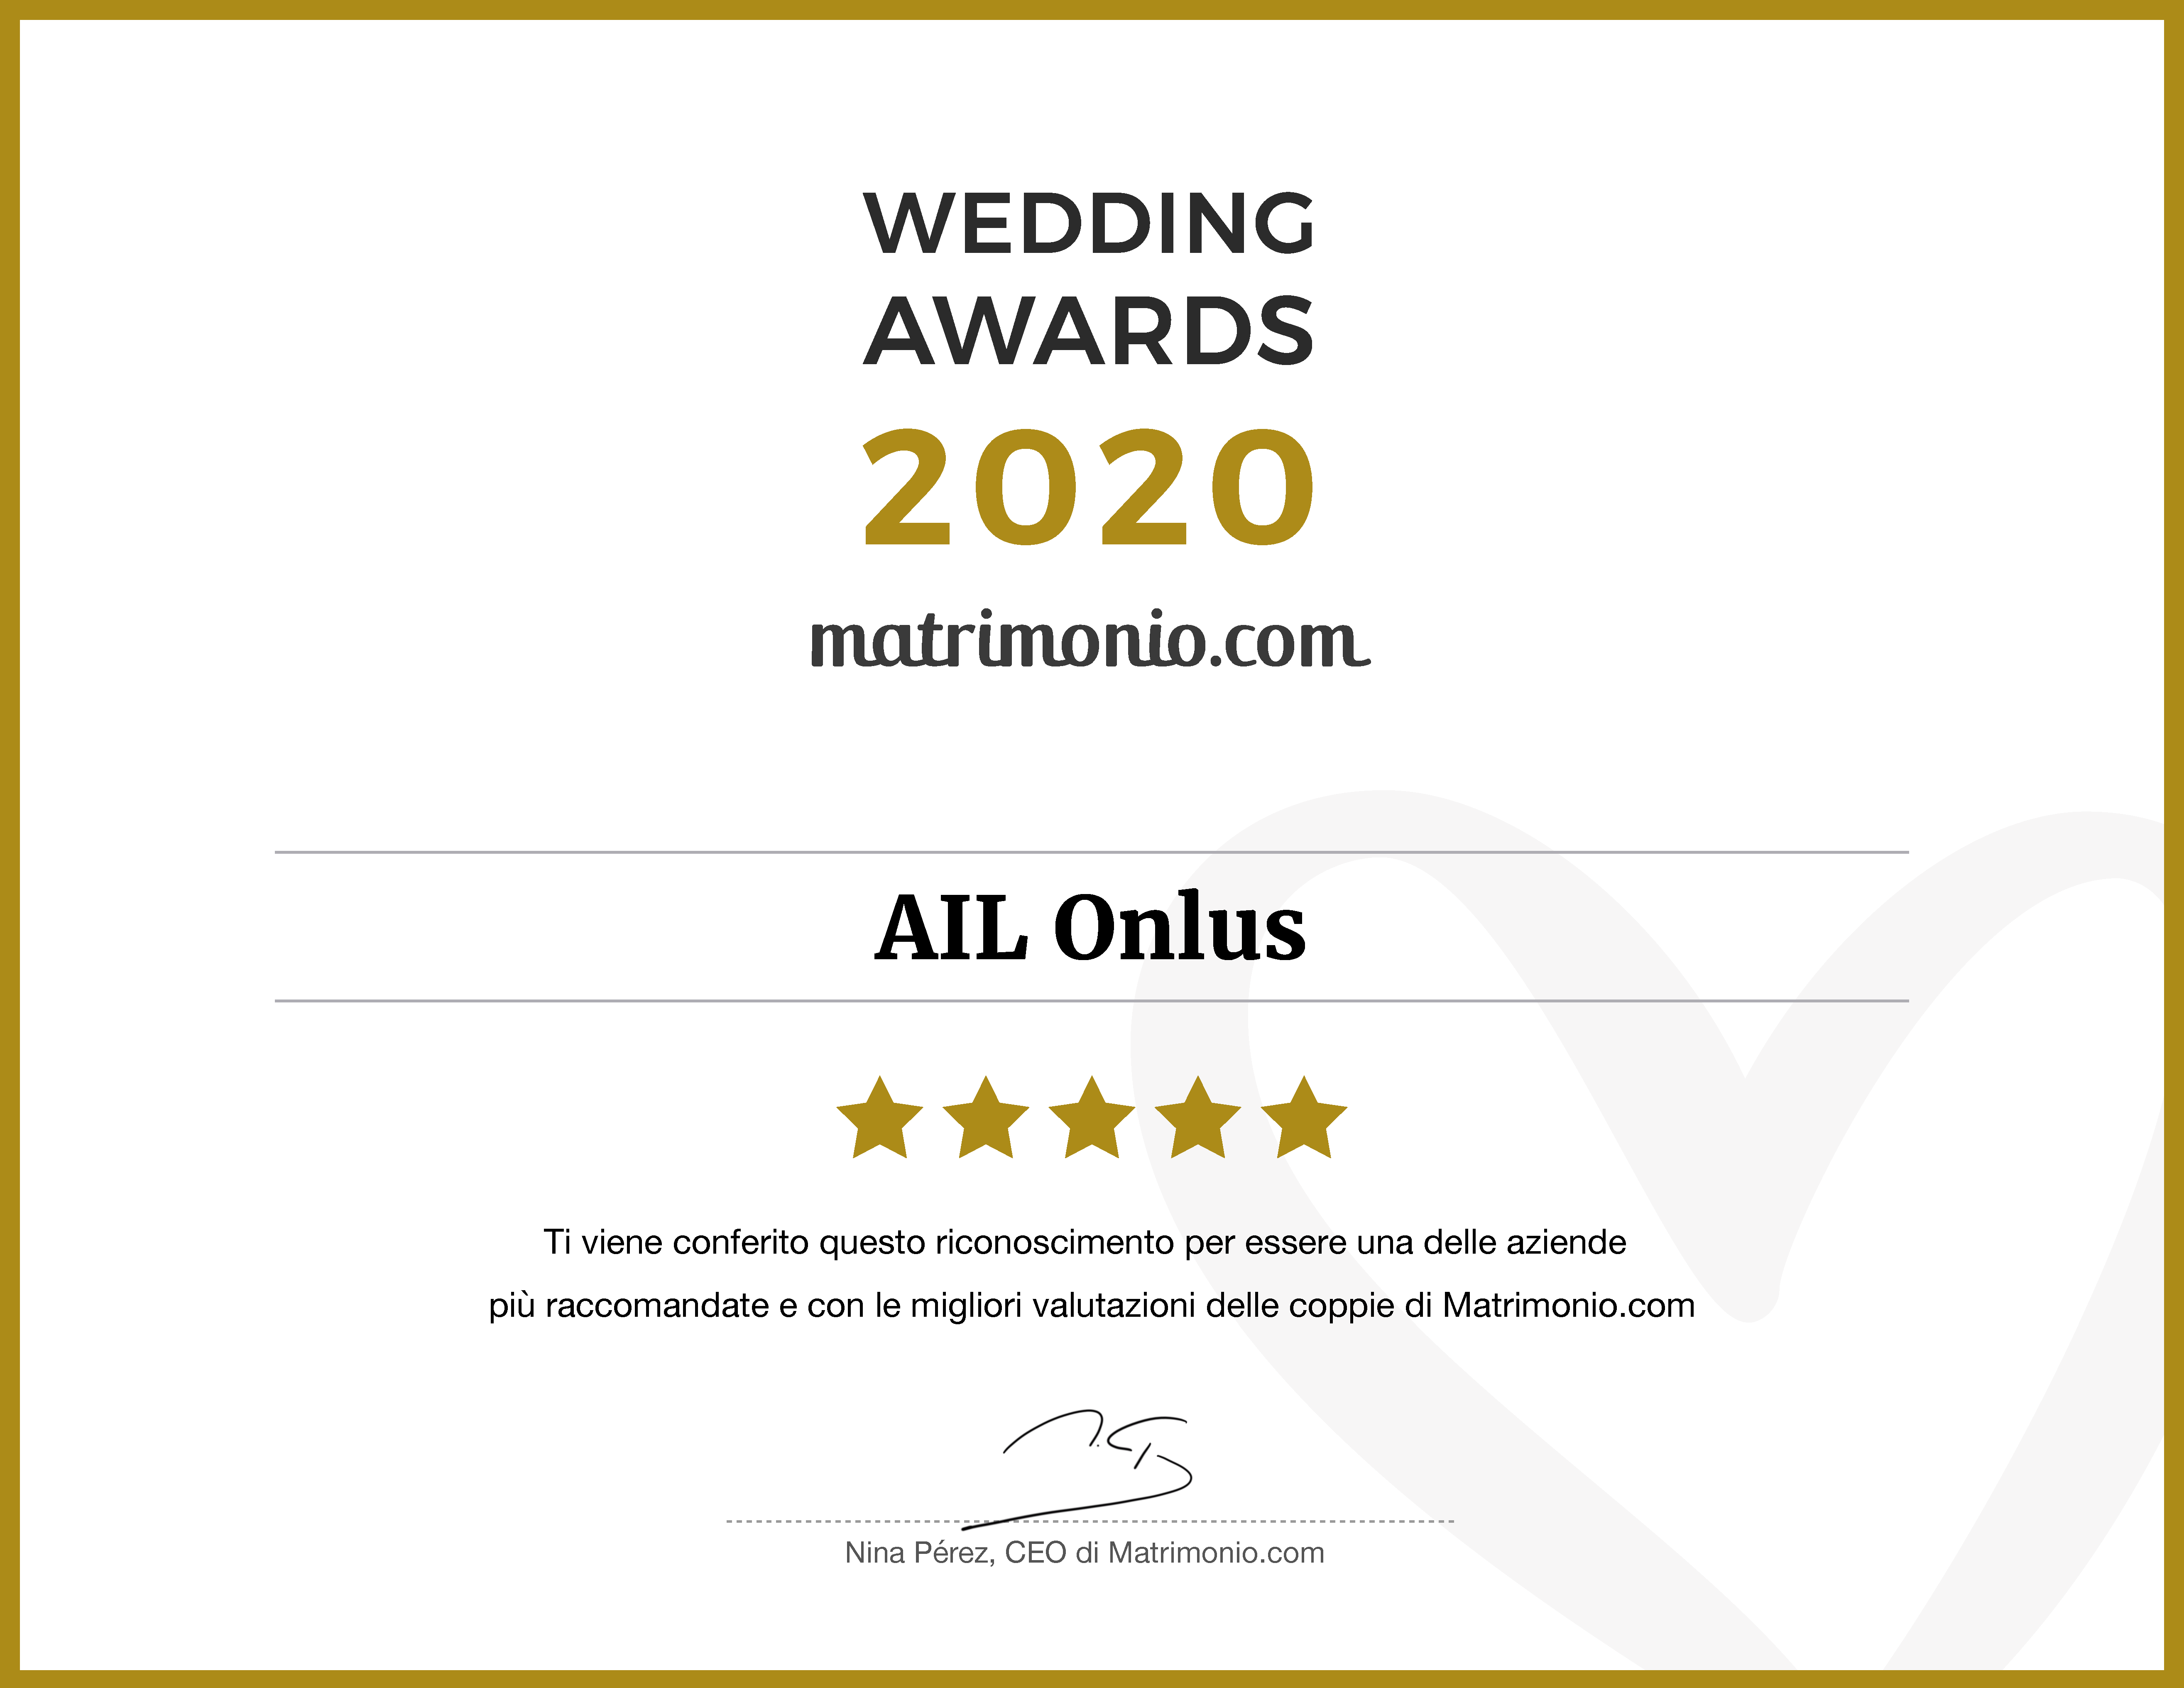 L'attestato del Wedding Awards ricevuto da Matrimonio.com